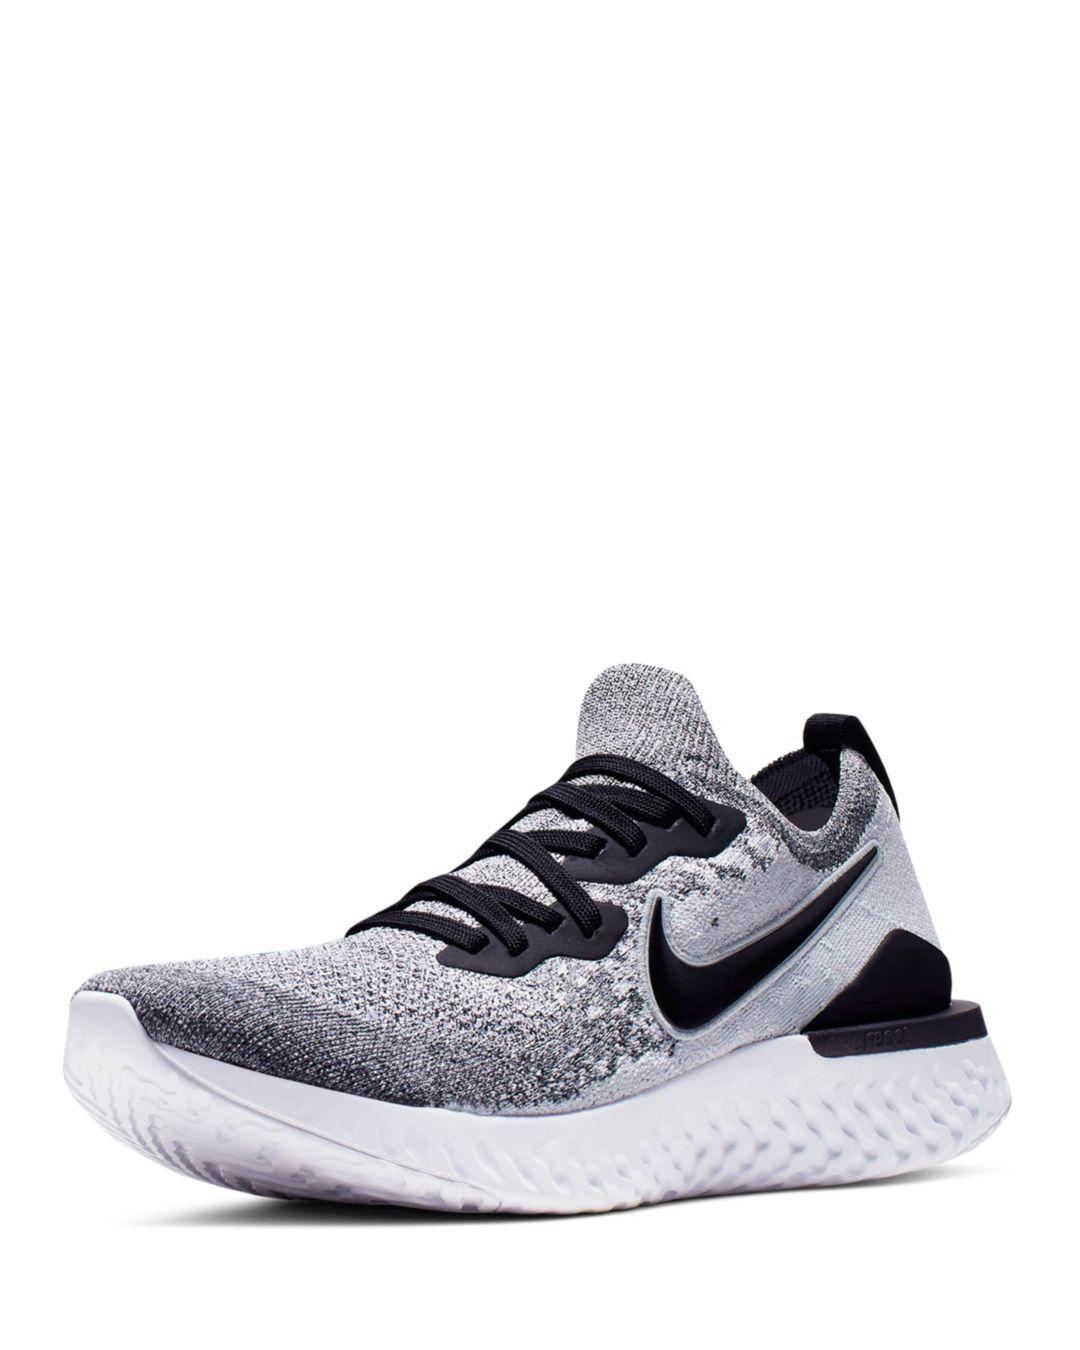 2ca3c5863c7b Lyst - Nike Men s Epic React Flyknit Sneakers in White for Men